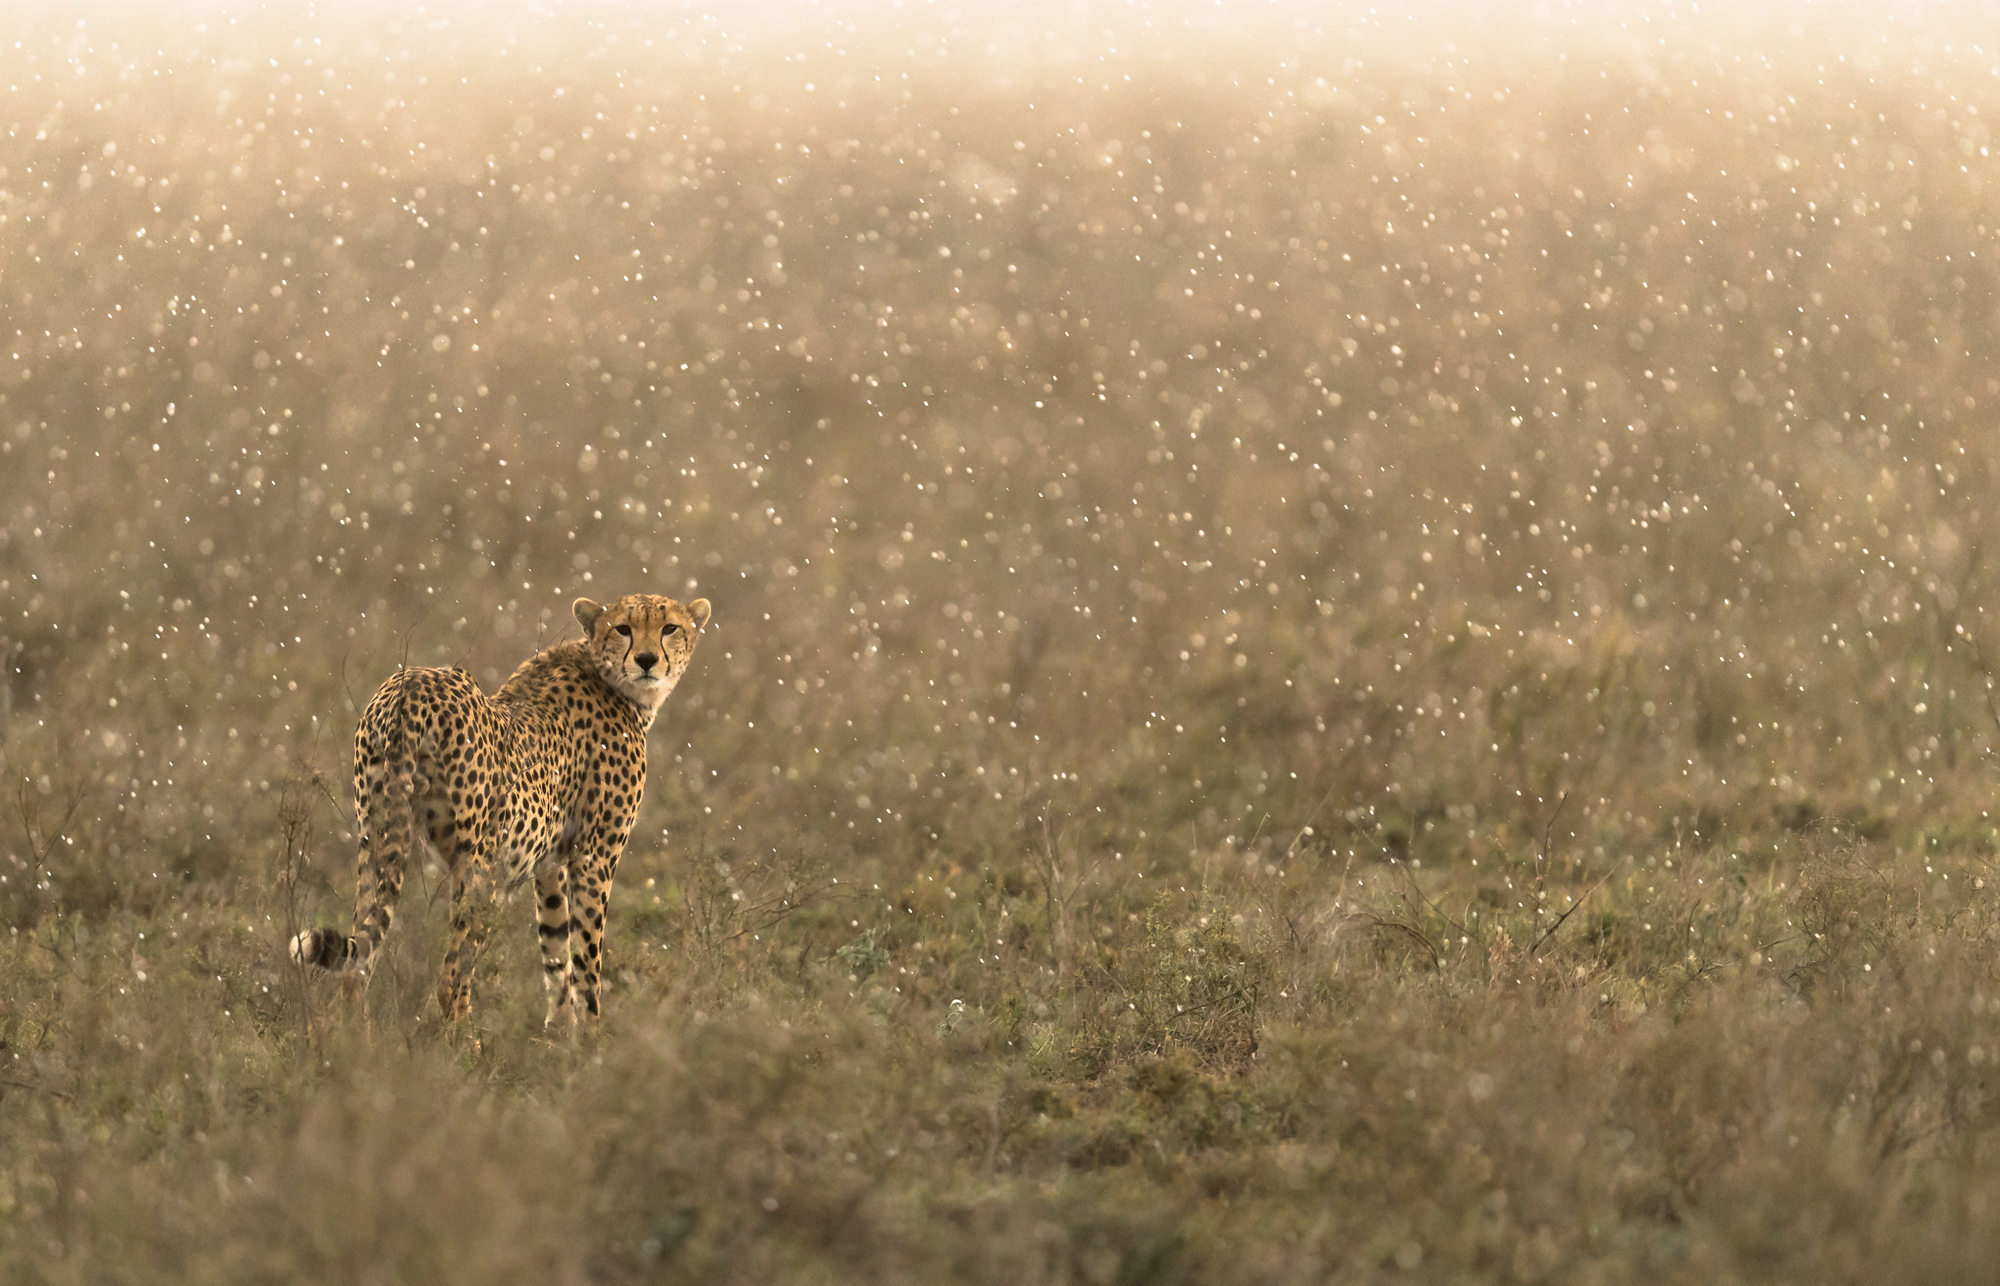 Cheetah in the rain © George Turner